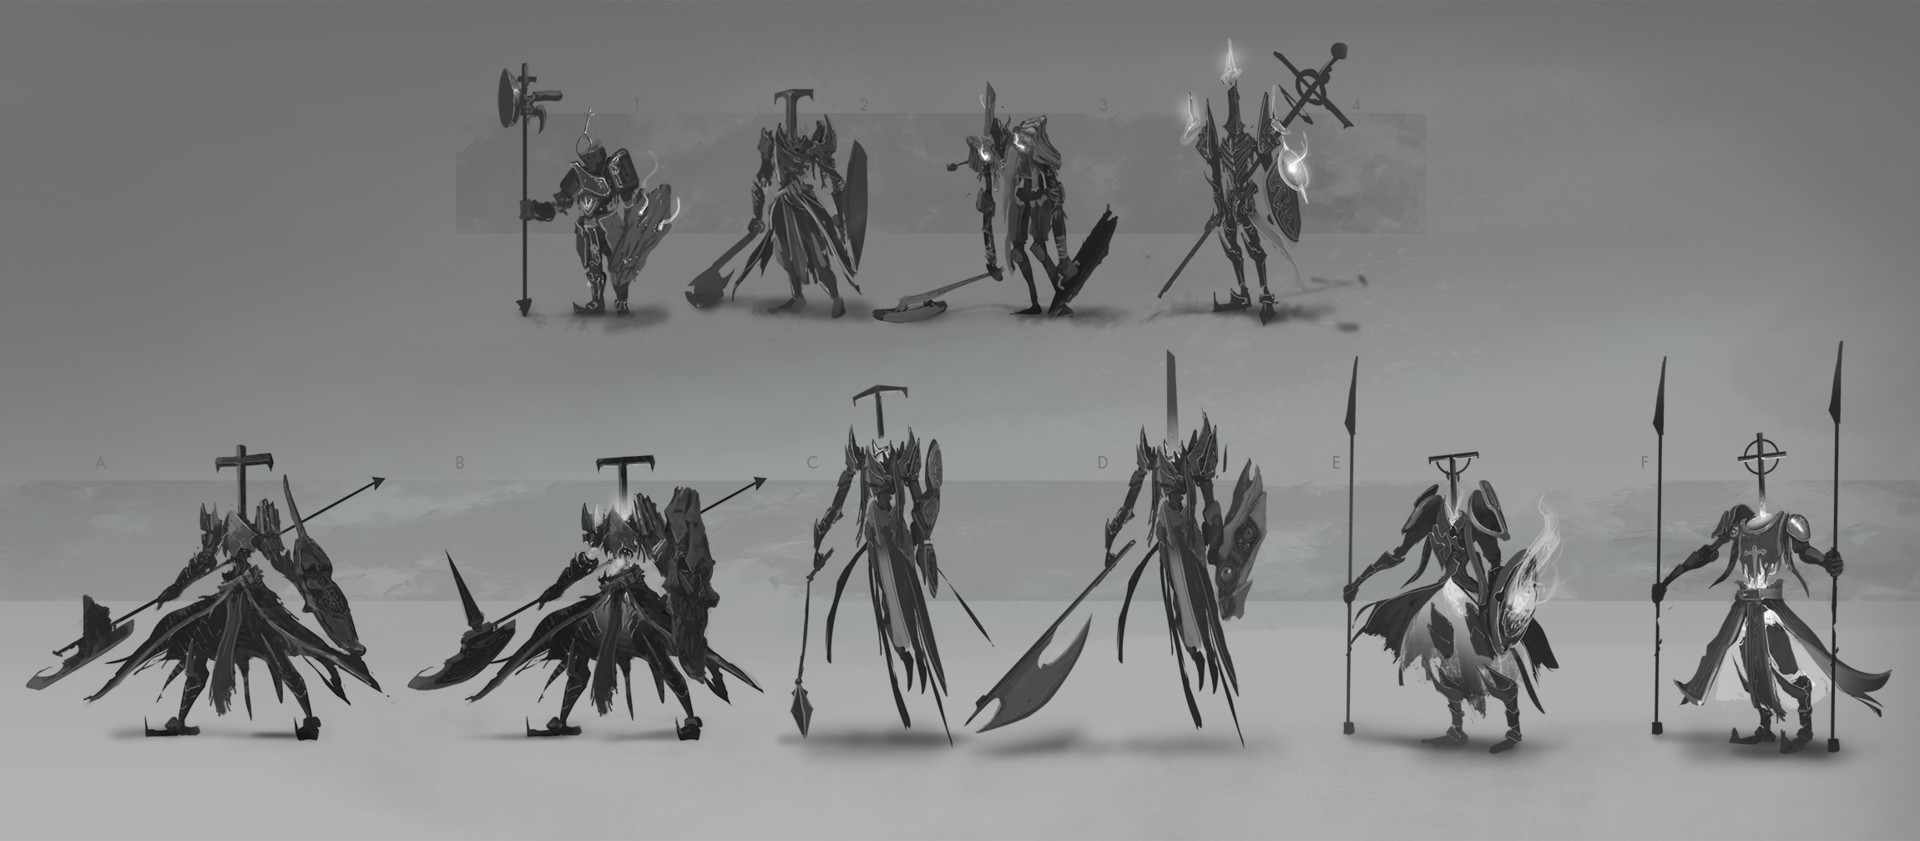 Initial exploration, I decided to move forward with 2, and tried the variations below.  I tried pushing the character into a couple other directions after choosing 2. Mainly, a more spectral (B,C) and grounded (E,F)